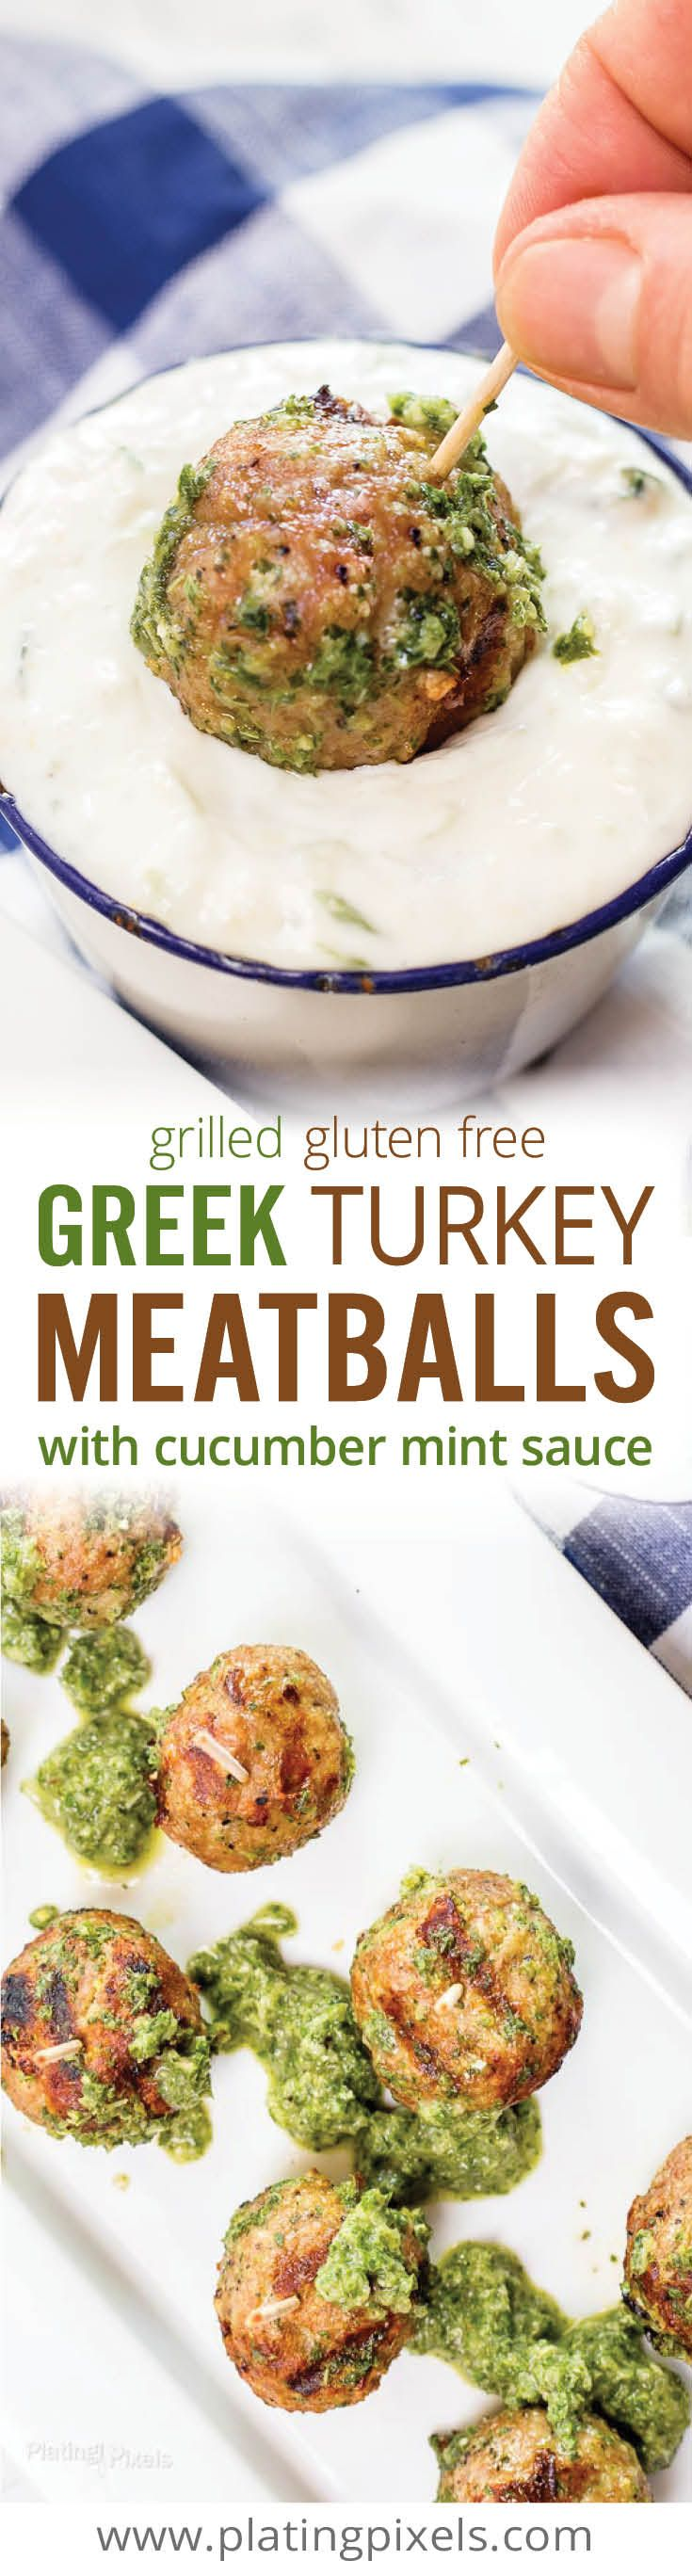 ... turkey meatballs turkey meatballs greek turkey meatballs